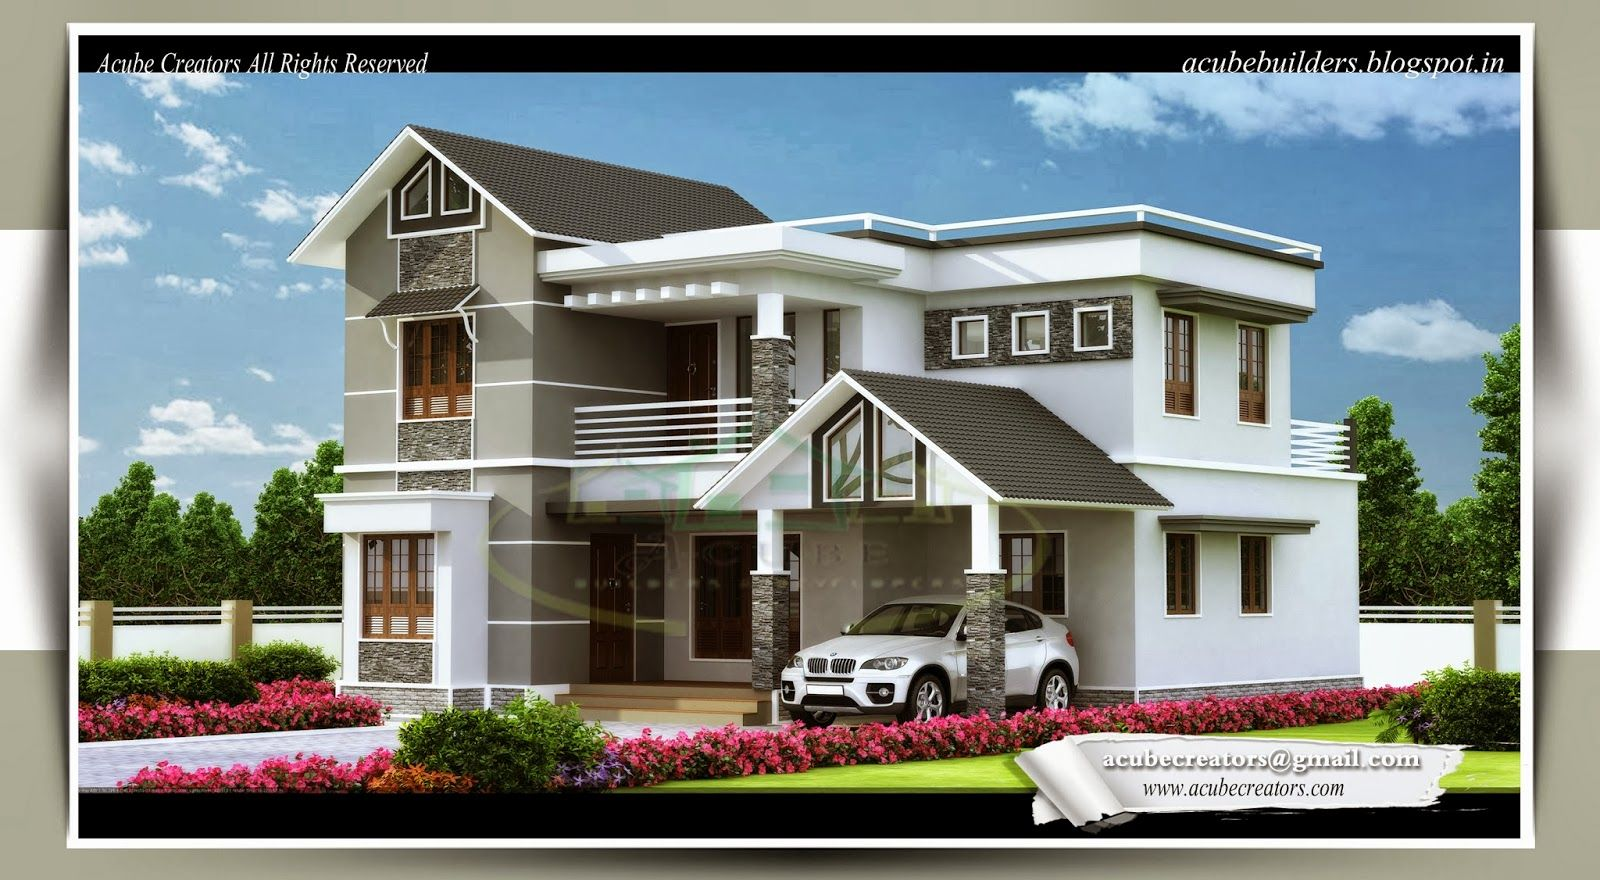 Home Design Pictures Pleasing Home Design Gallery Fresh Ideas Kerala Home Design Photos  Home . Design Inspiration